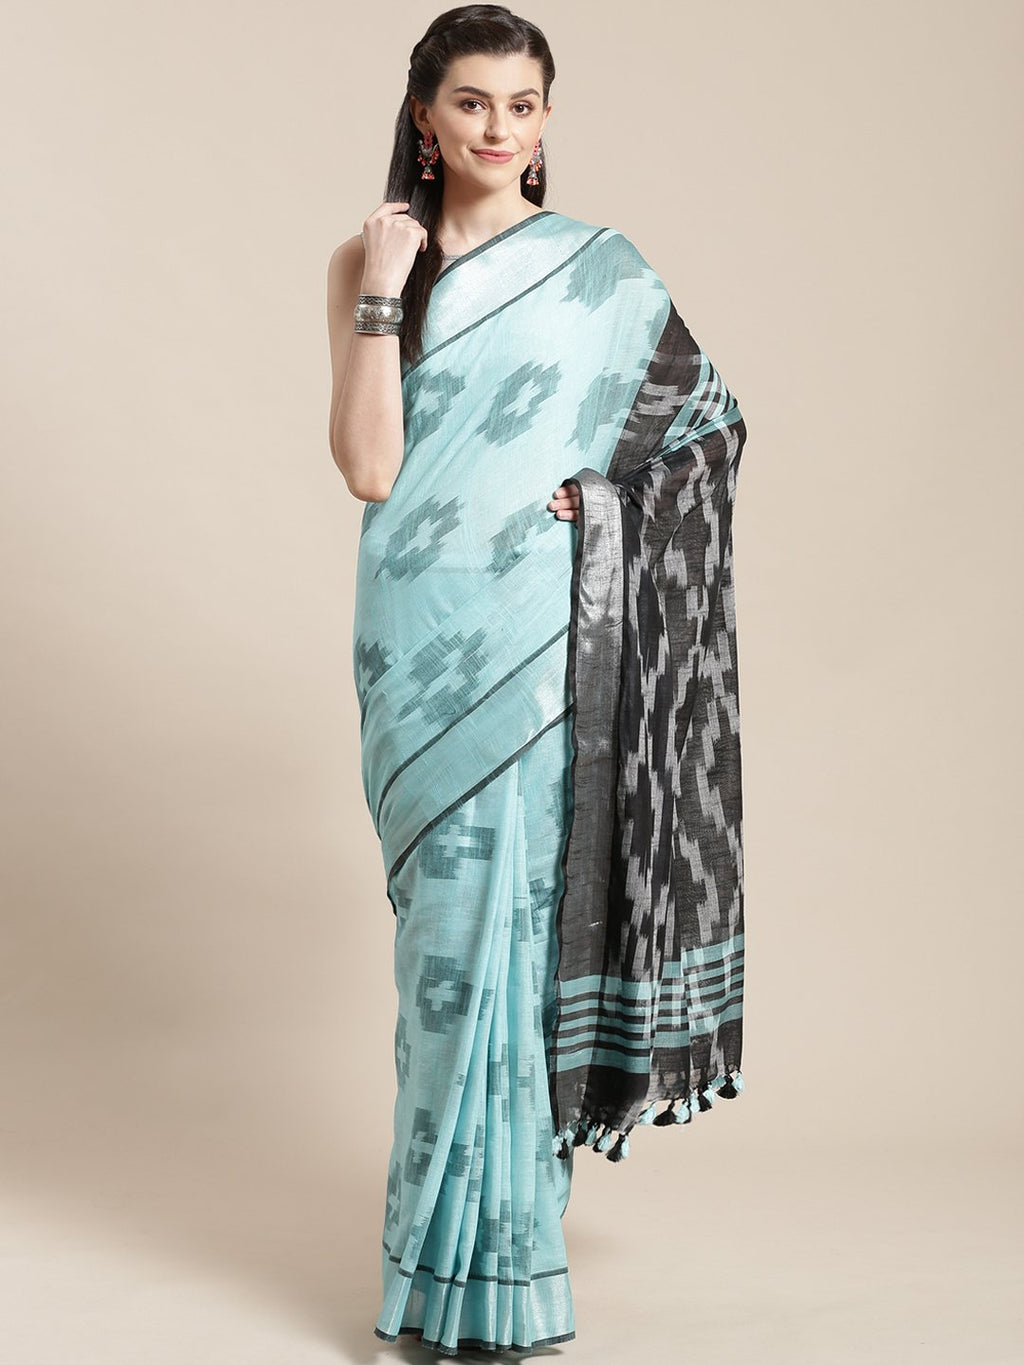 Linen Handwoven Saree and Blouse-Saree-Kalakari India-ALBGSA0040-Hand Woven, Linen, Sarees, Sustainable Fabrics, Traditional Weave-[Linen,Ethnic,wear,Fashionista,Handloom,Handicraft,Indigo,blockprint,block,print,Cotton,Chanderi,Blue, latest,classy,party,bollywood,trendy,summer,style,traditional,formal,elegant,unique,style,hand,block,print, dabu,booti,gift,present,glamorous,affordable,collectible,Sari,Saree,printed, holi, Diwali, birthday, anniversary, sustainable, organic, scarf, online, low pri